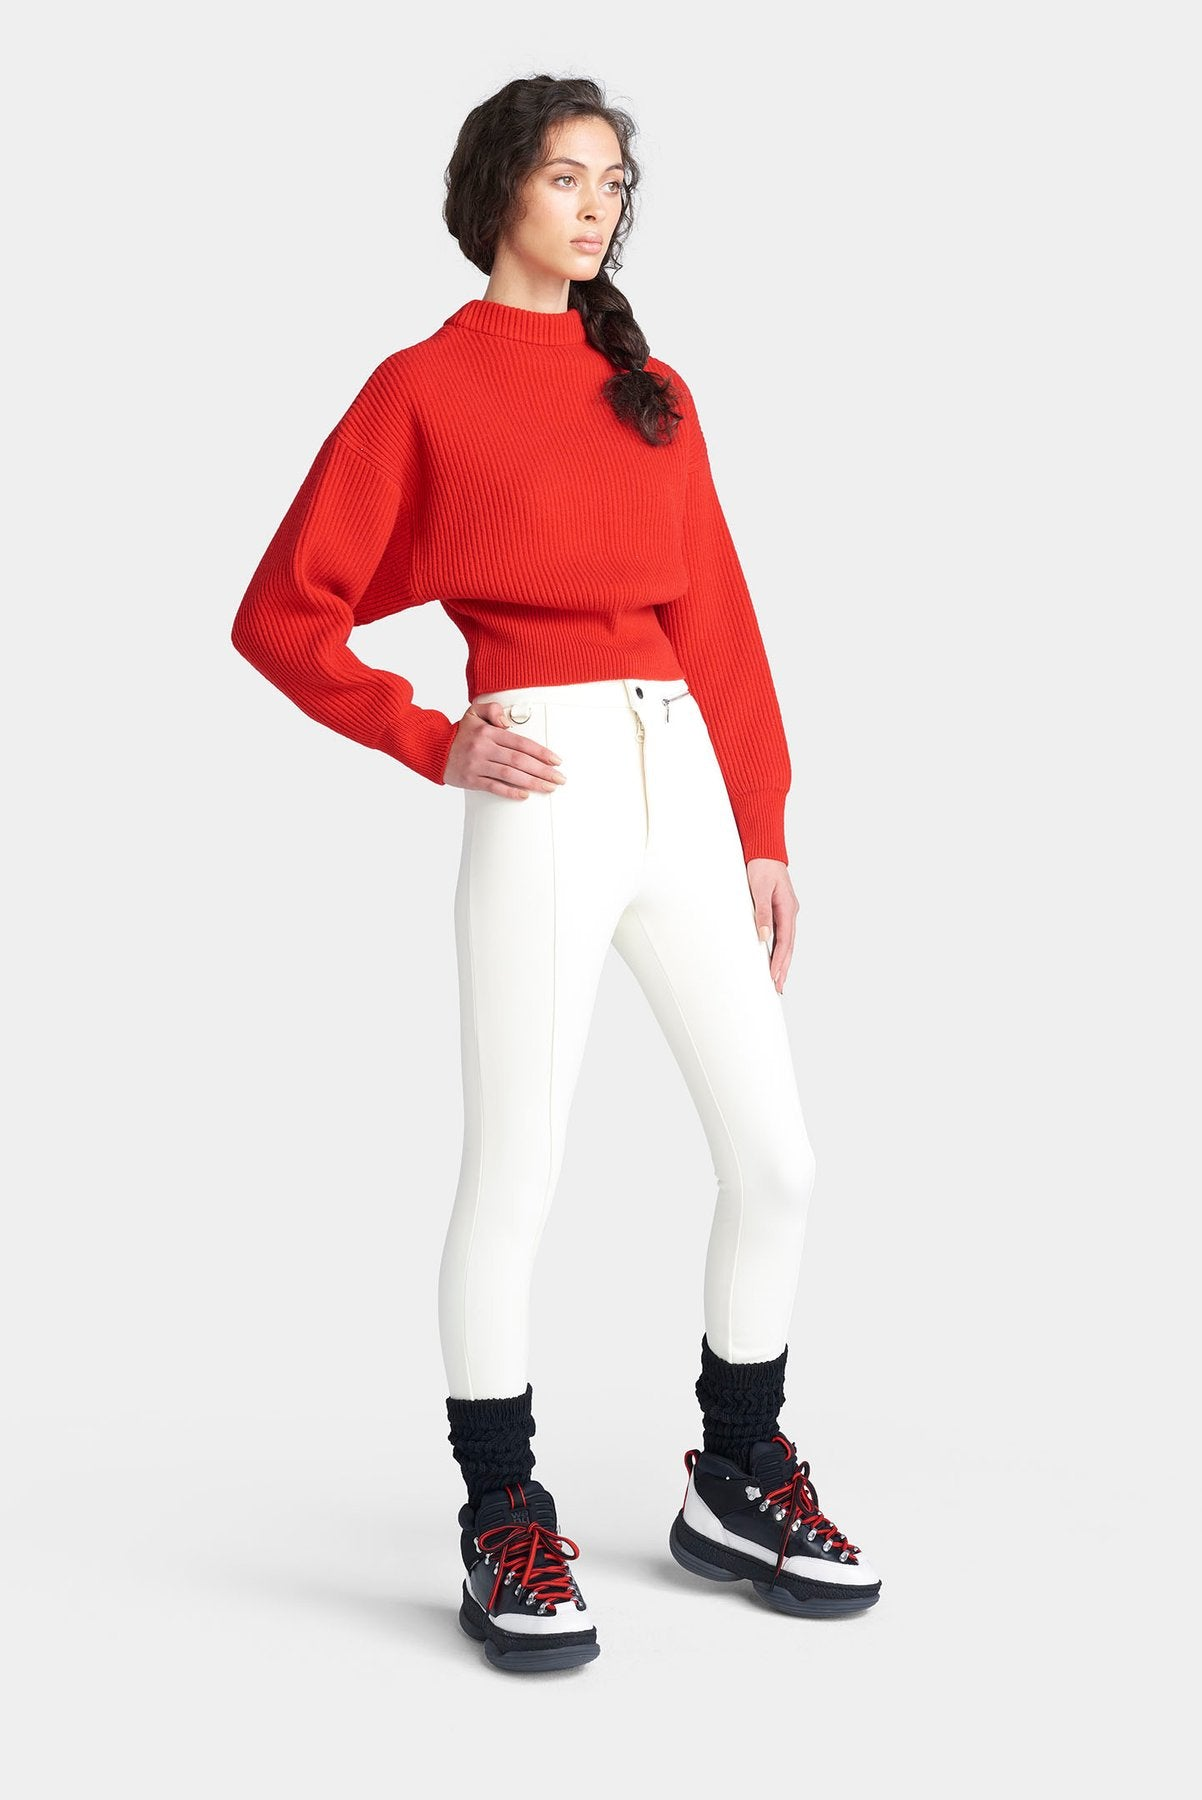 The Megeve Sweater - Fiery Red